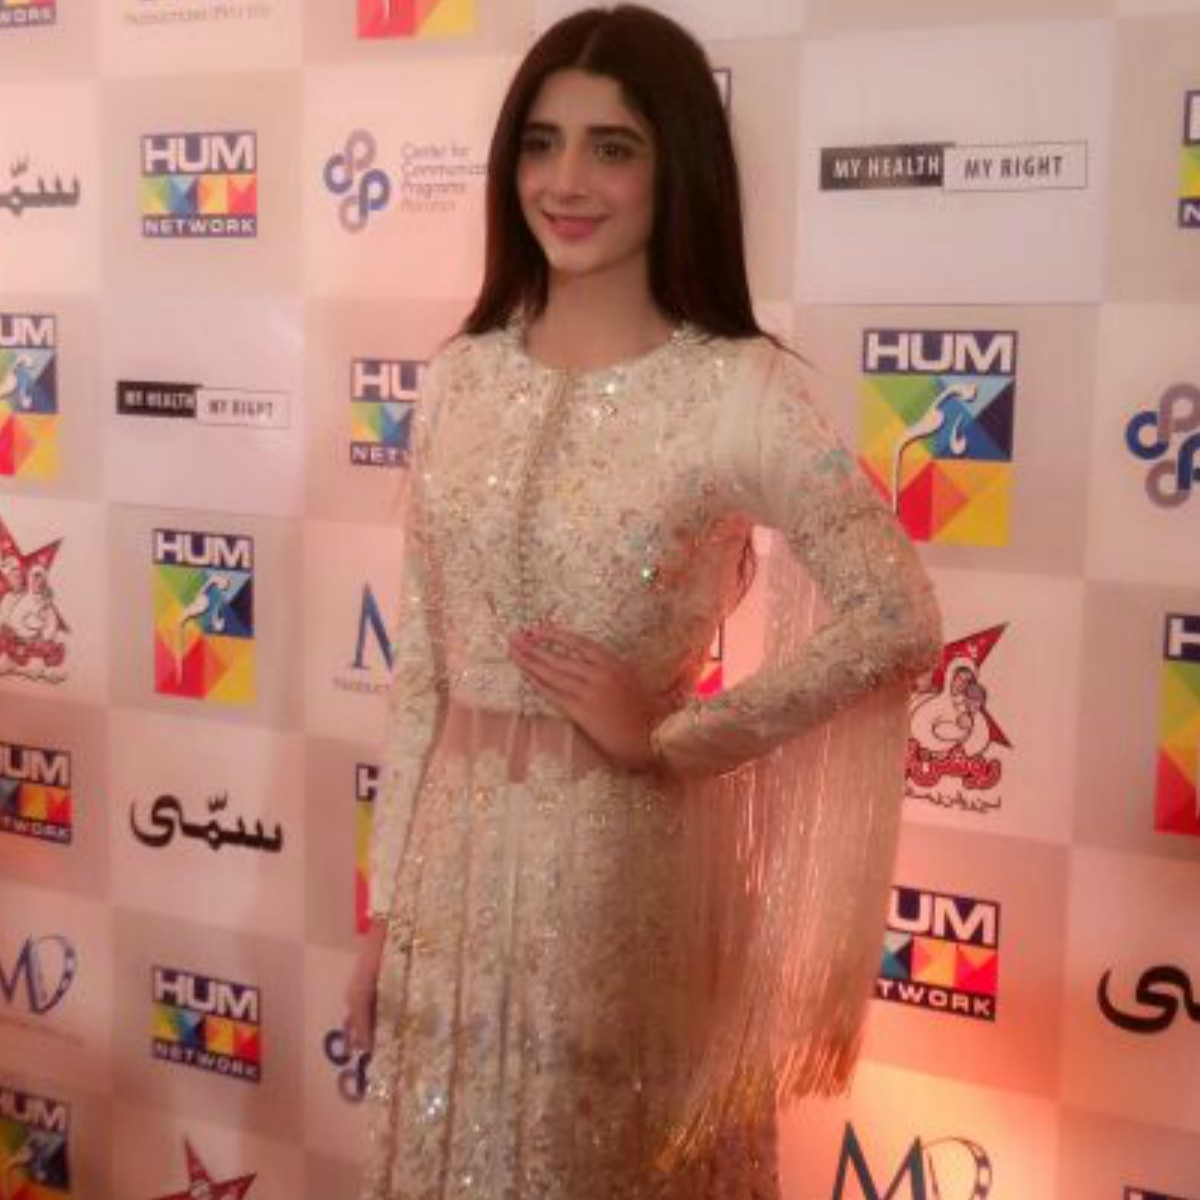 Lead star of Sammi, Mawra Hocane looking radiant in white at the press conference